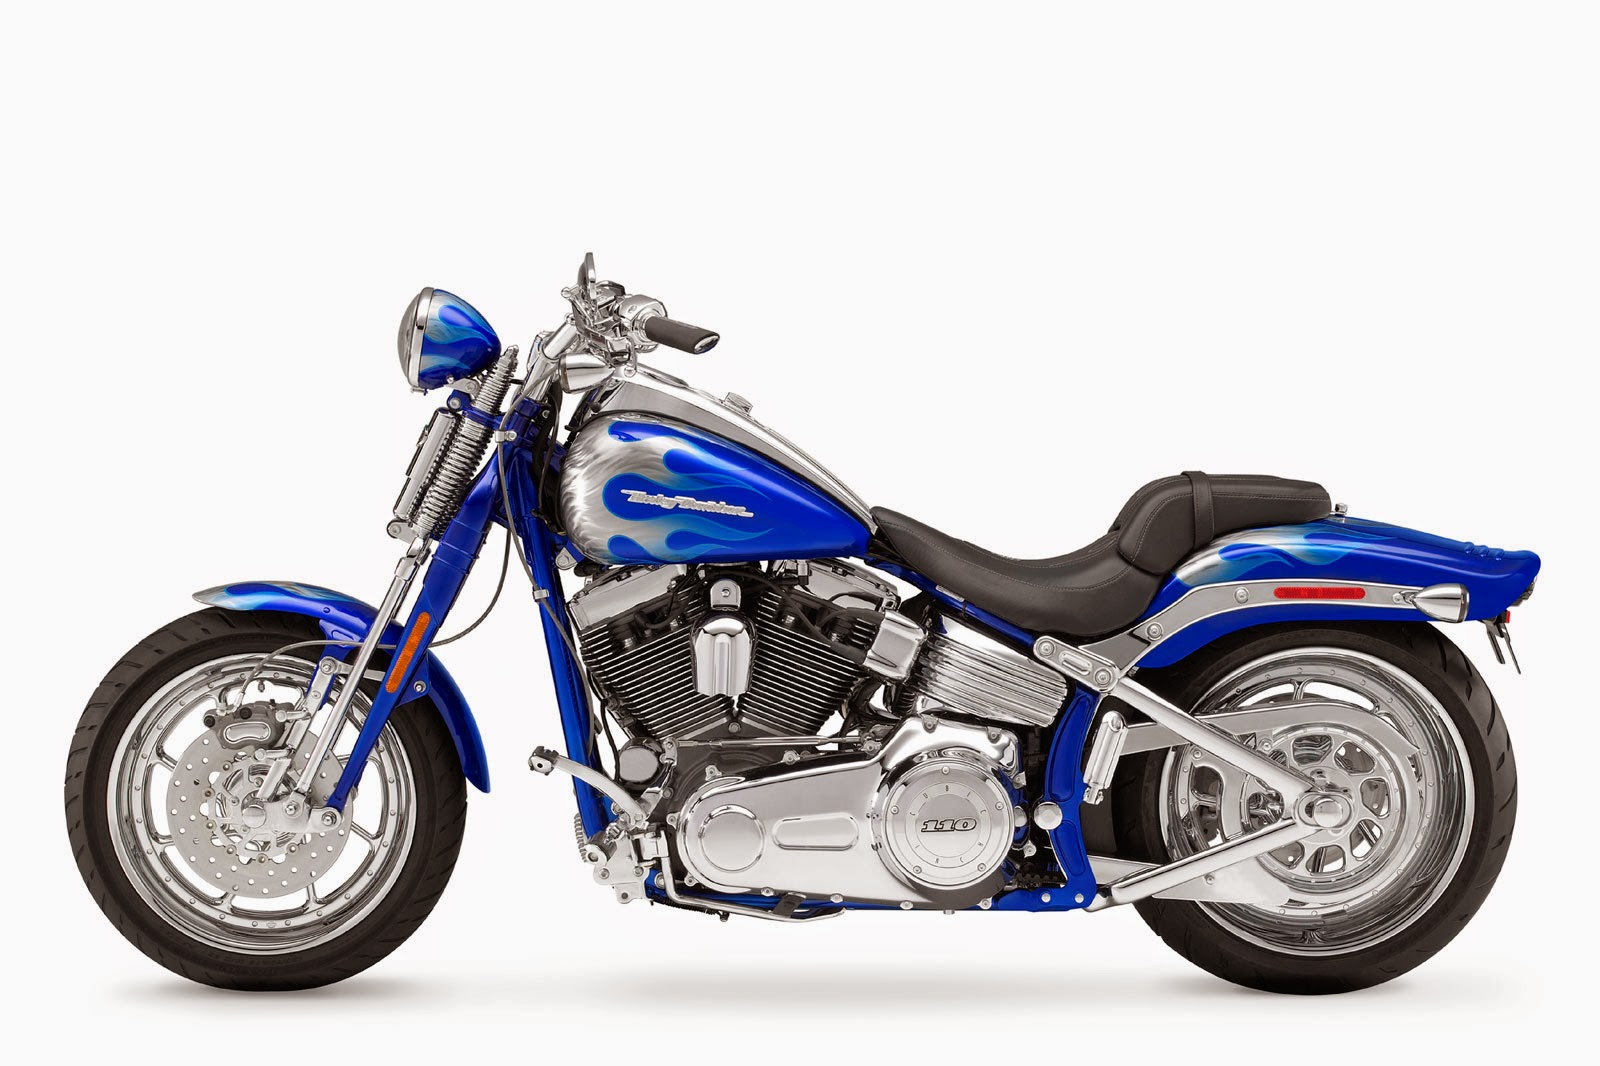 harley davidson cvo softail springer fxstsse3 owner s manual 2009 rh harley manuals cc 2009 Ultra Classic Issues 2009 Ultra Classic Review